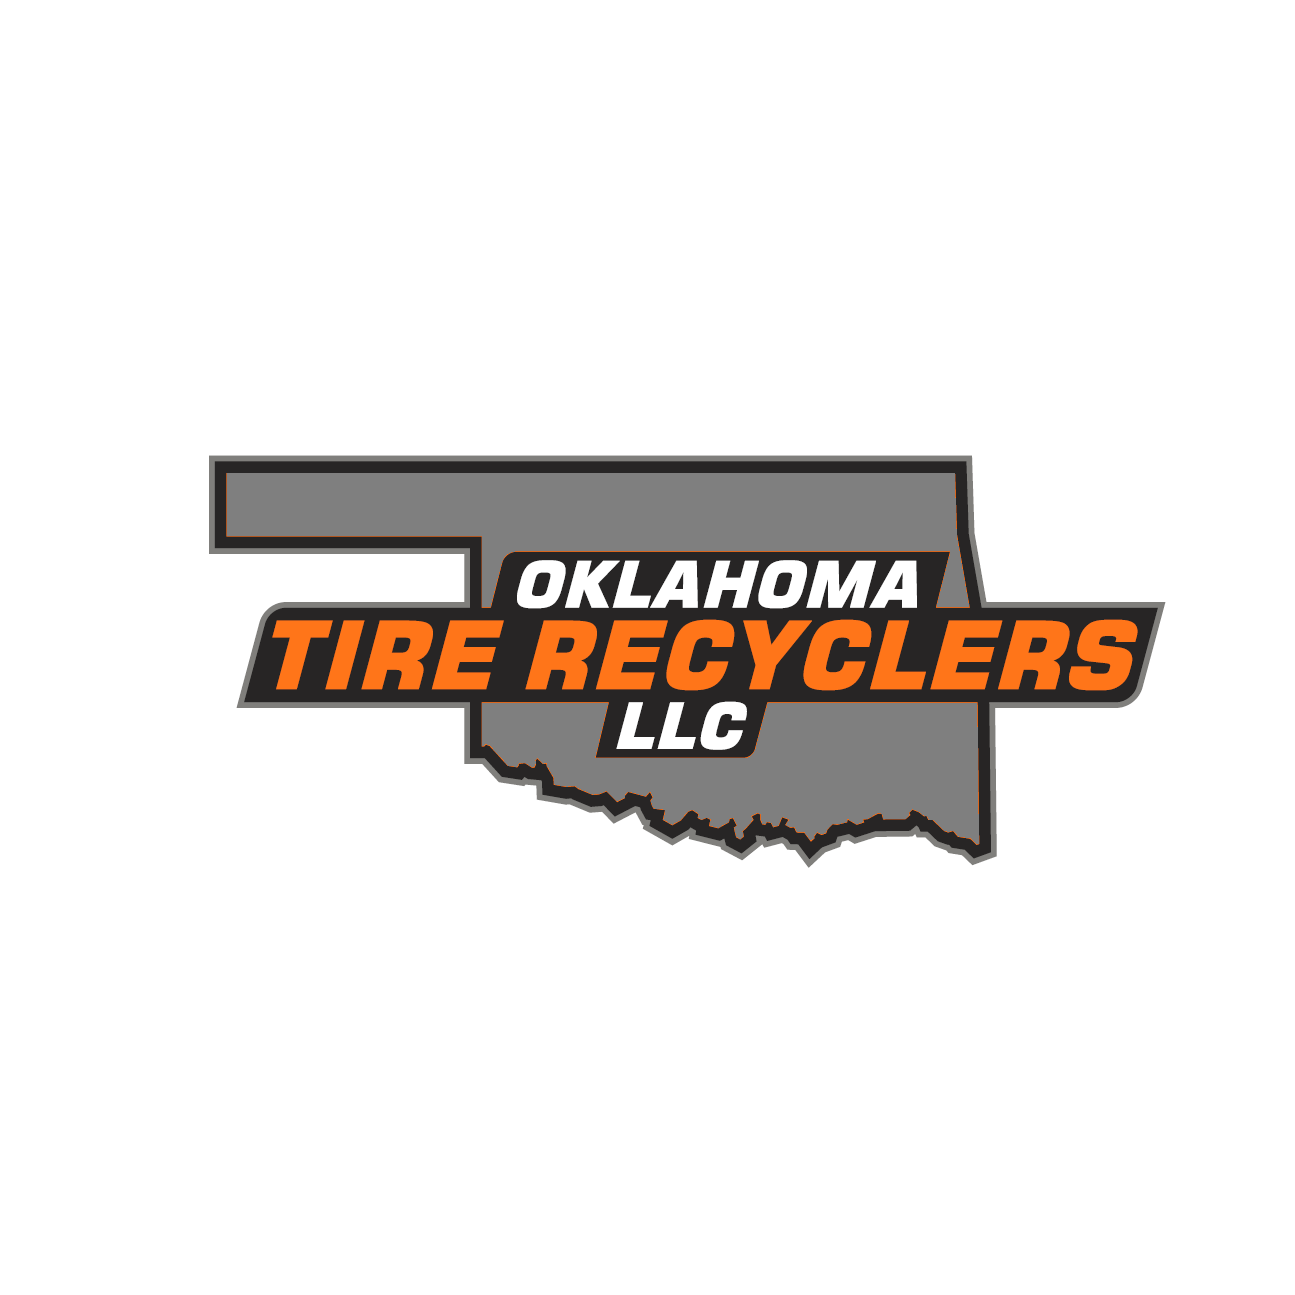 Oklahoma Tire Recyclers